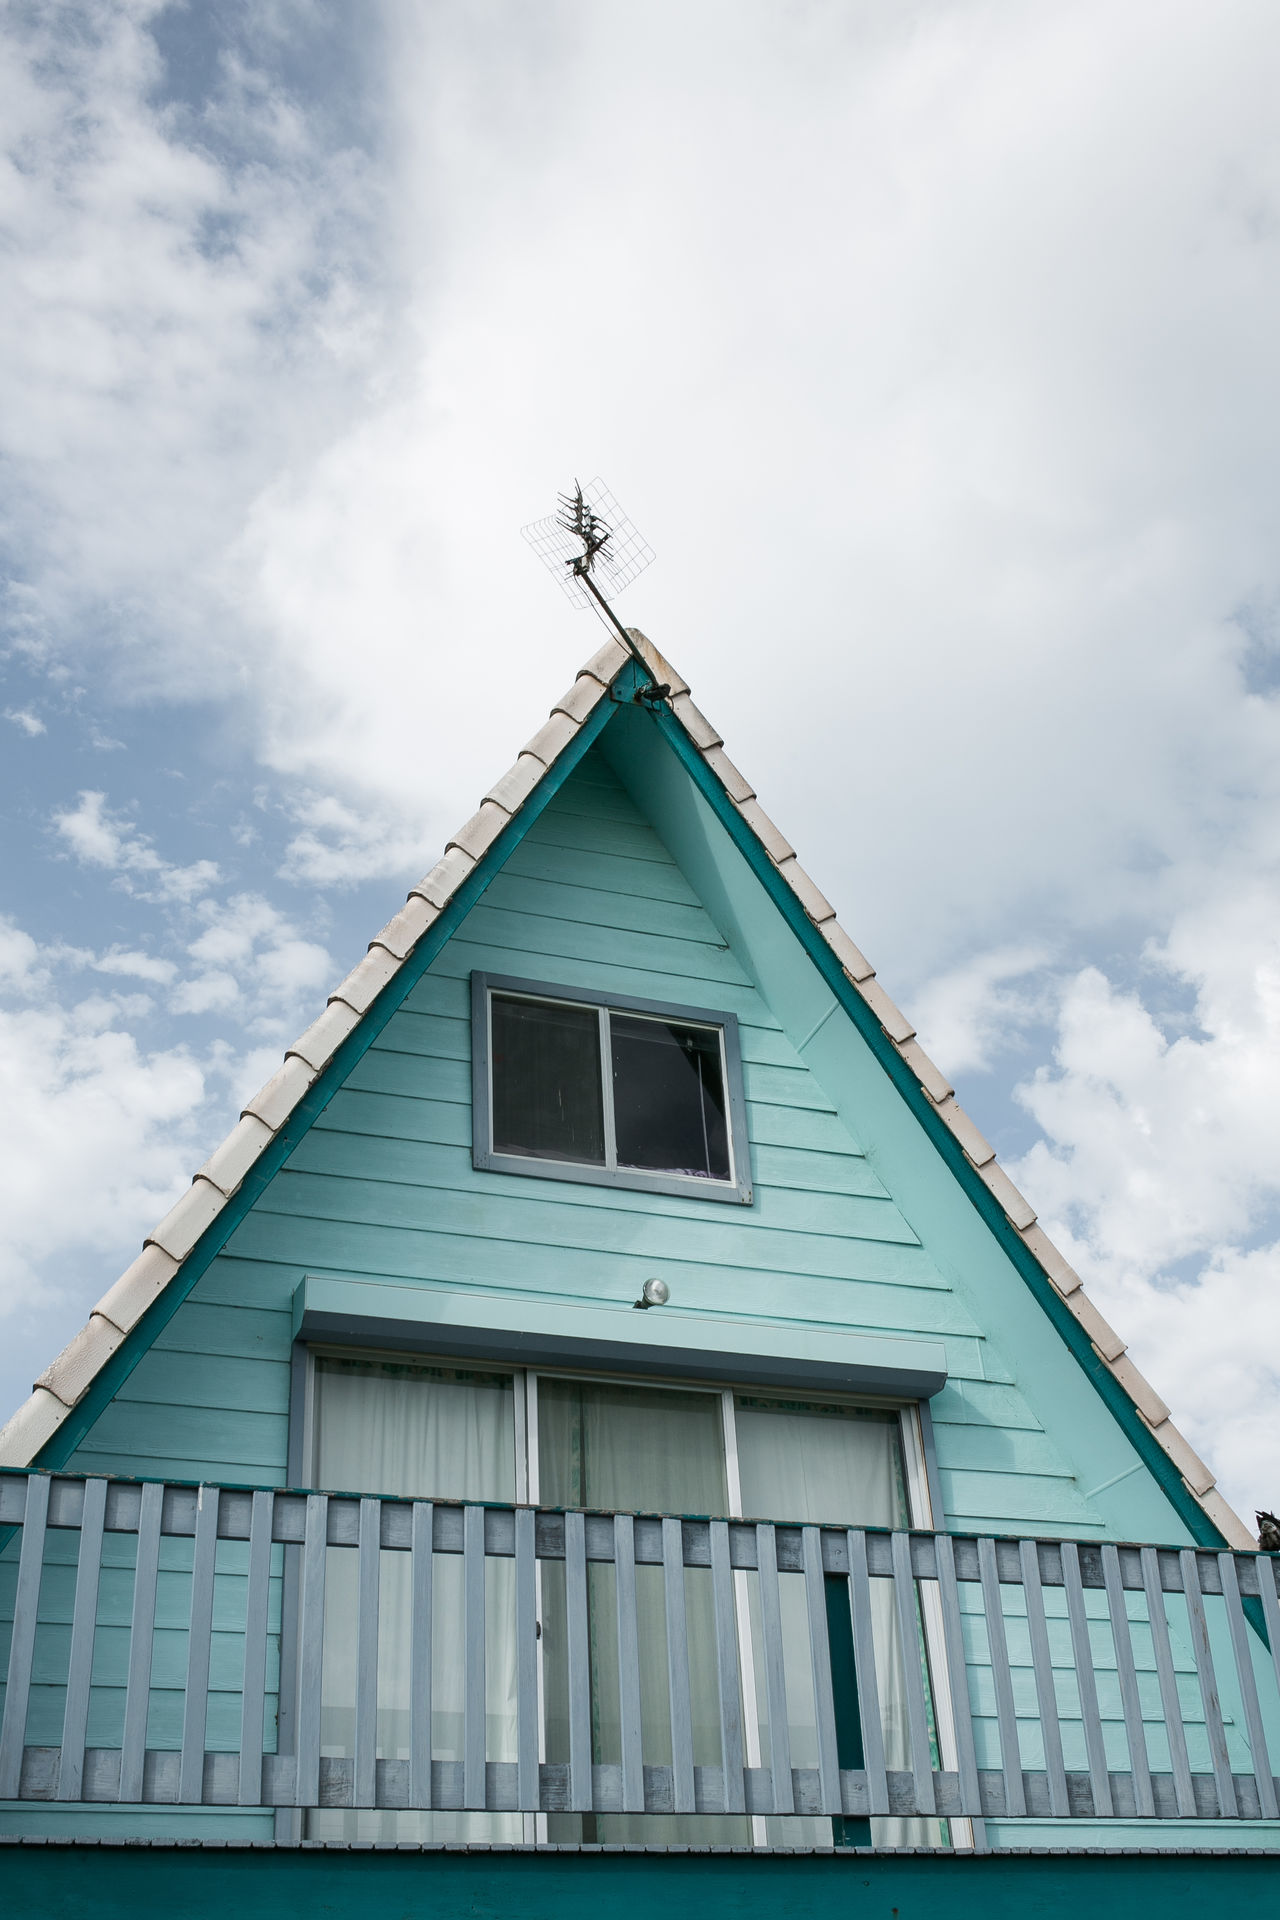 Where I stay at Goolwa, SA Architecture Blue Building Exterior Construction Exterior Goolwa Holiday Holiday House House Low Angle View Perspective Triangle